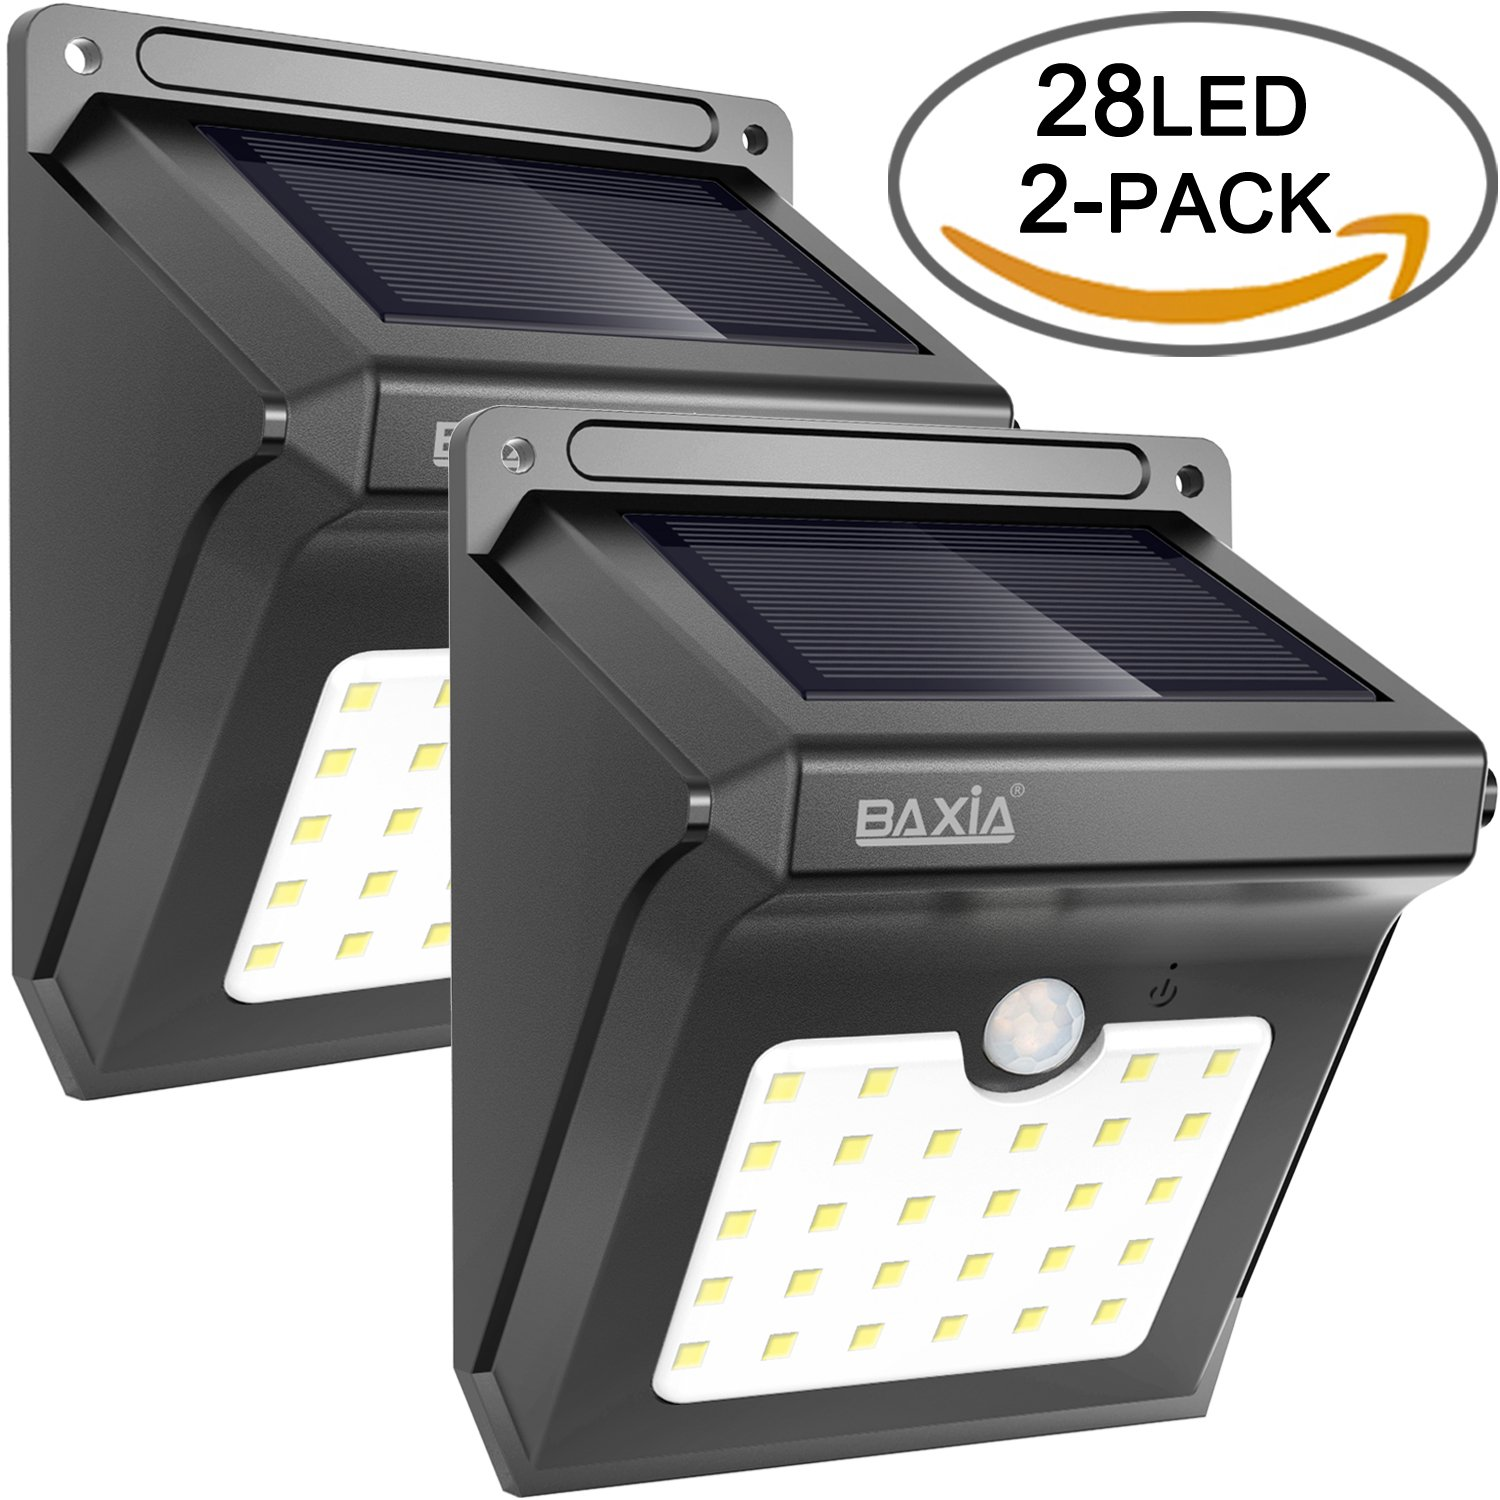 28 LED Solar Motion Sensor Security Wall Lights-BAXIA TECHNOLOGY Waterproof Wireless Bright LED Light